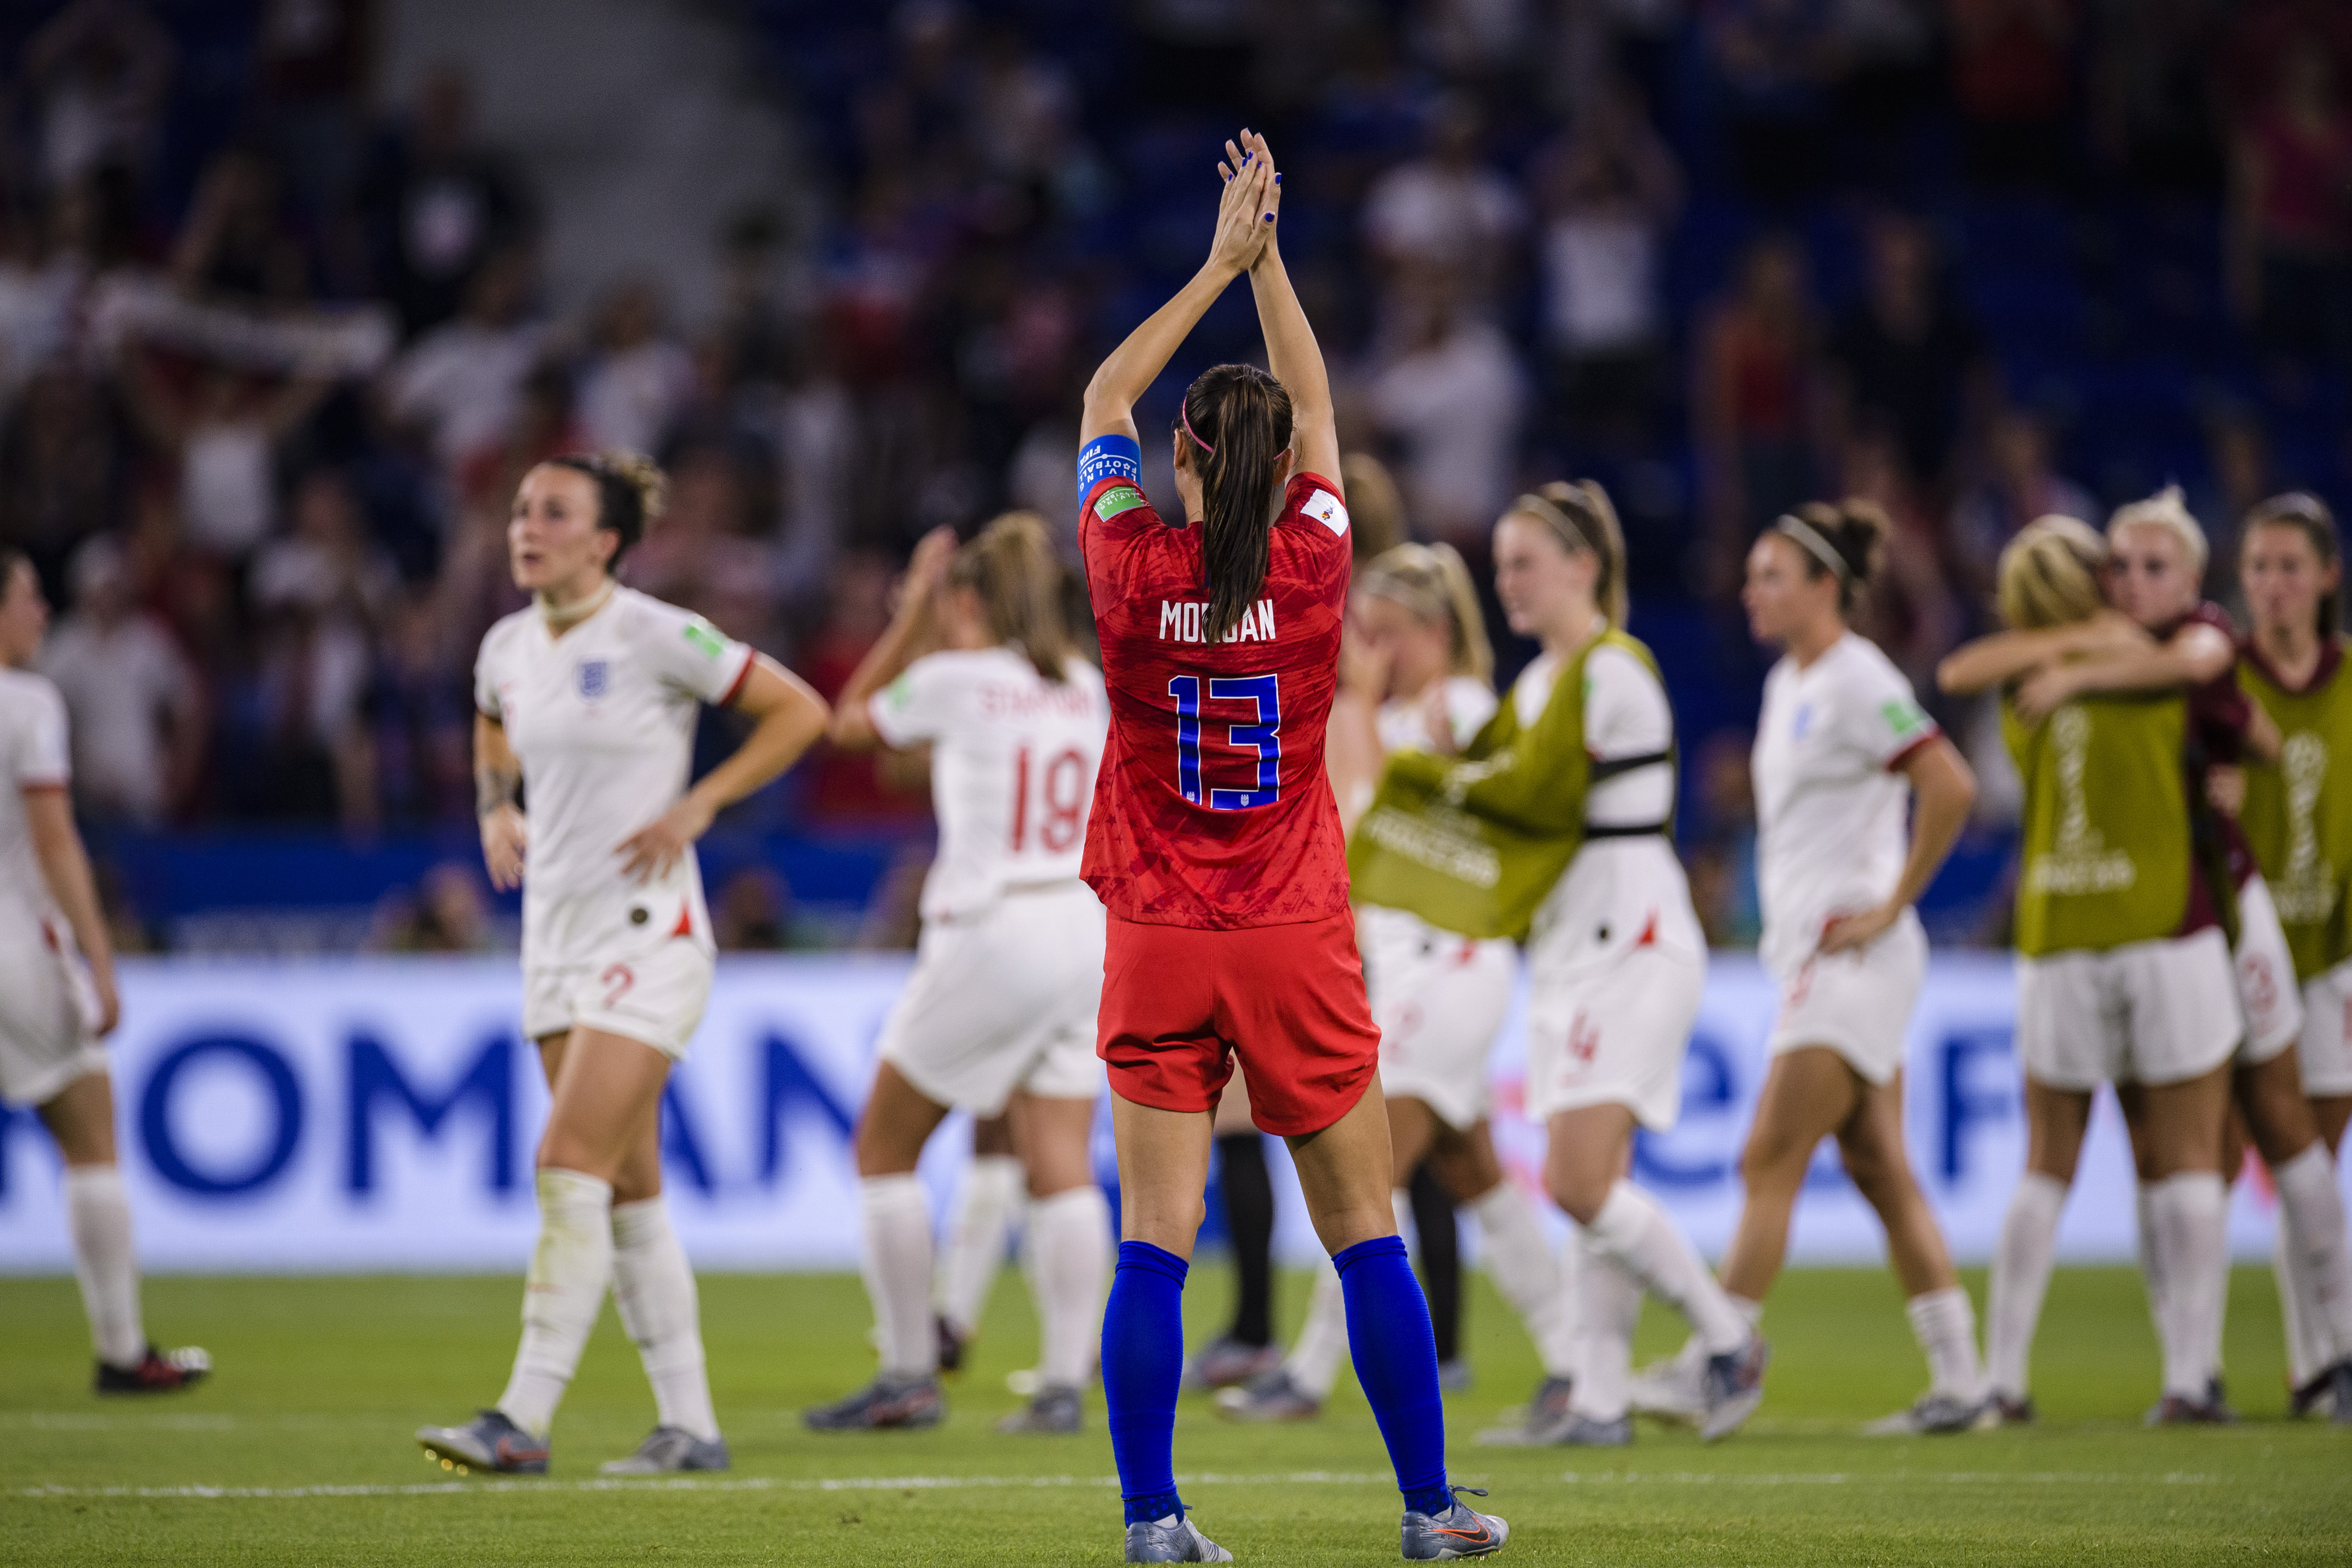 LYON, FRANCE - JULY 02: Alex Morgan of United States celebrates after winning England  during the 2019 FIFA Women's World Cup France Semi Final match between England and USA at Stade de Lyon on July 2, 2019 in Lyon, France. (Photo by Marcio Machado/Getty Images)